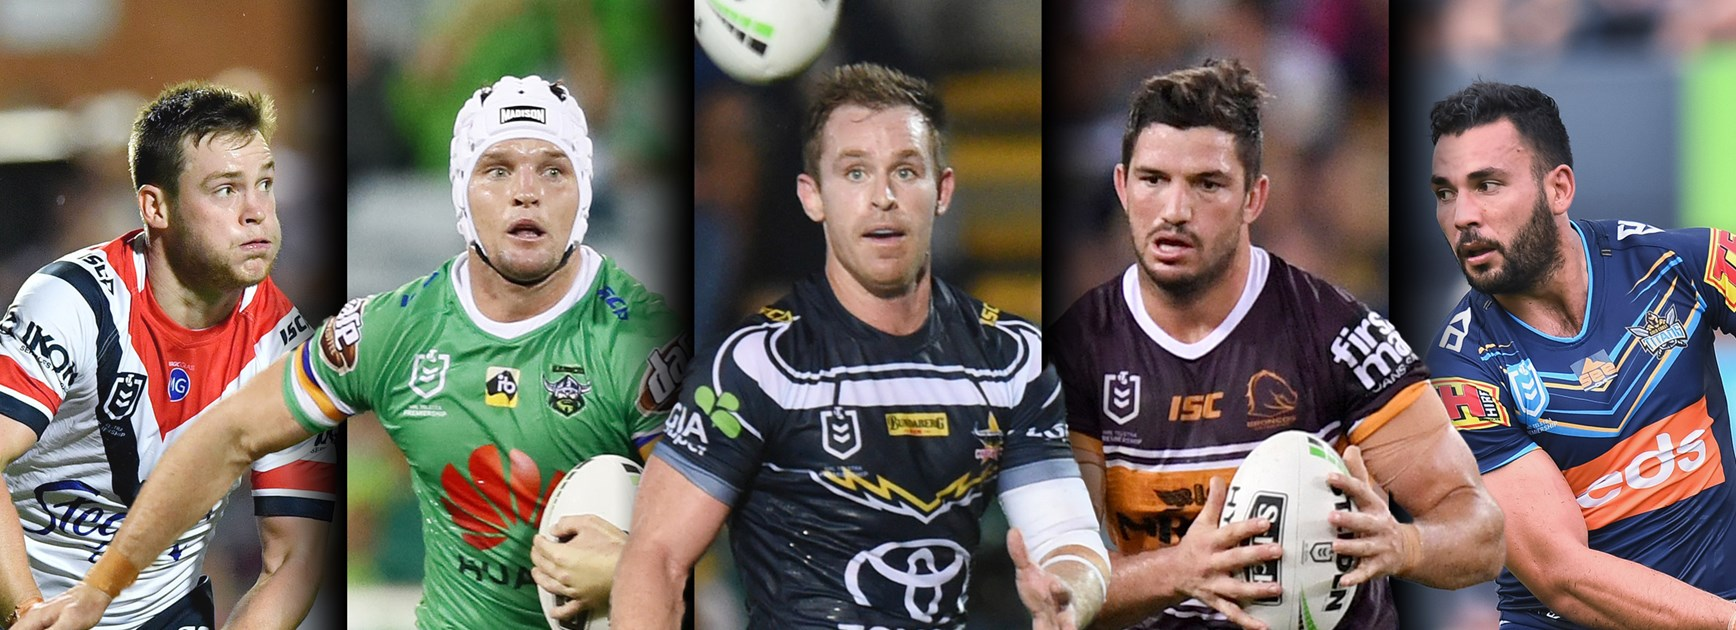 Rugby league turns to a new generation of statesmen